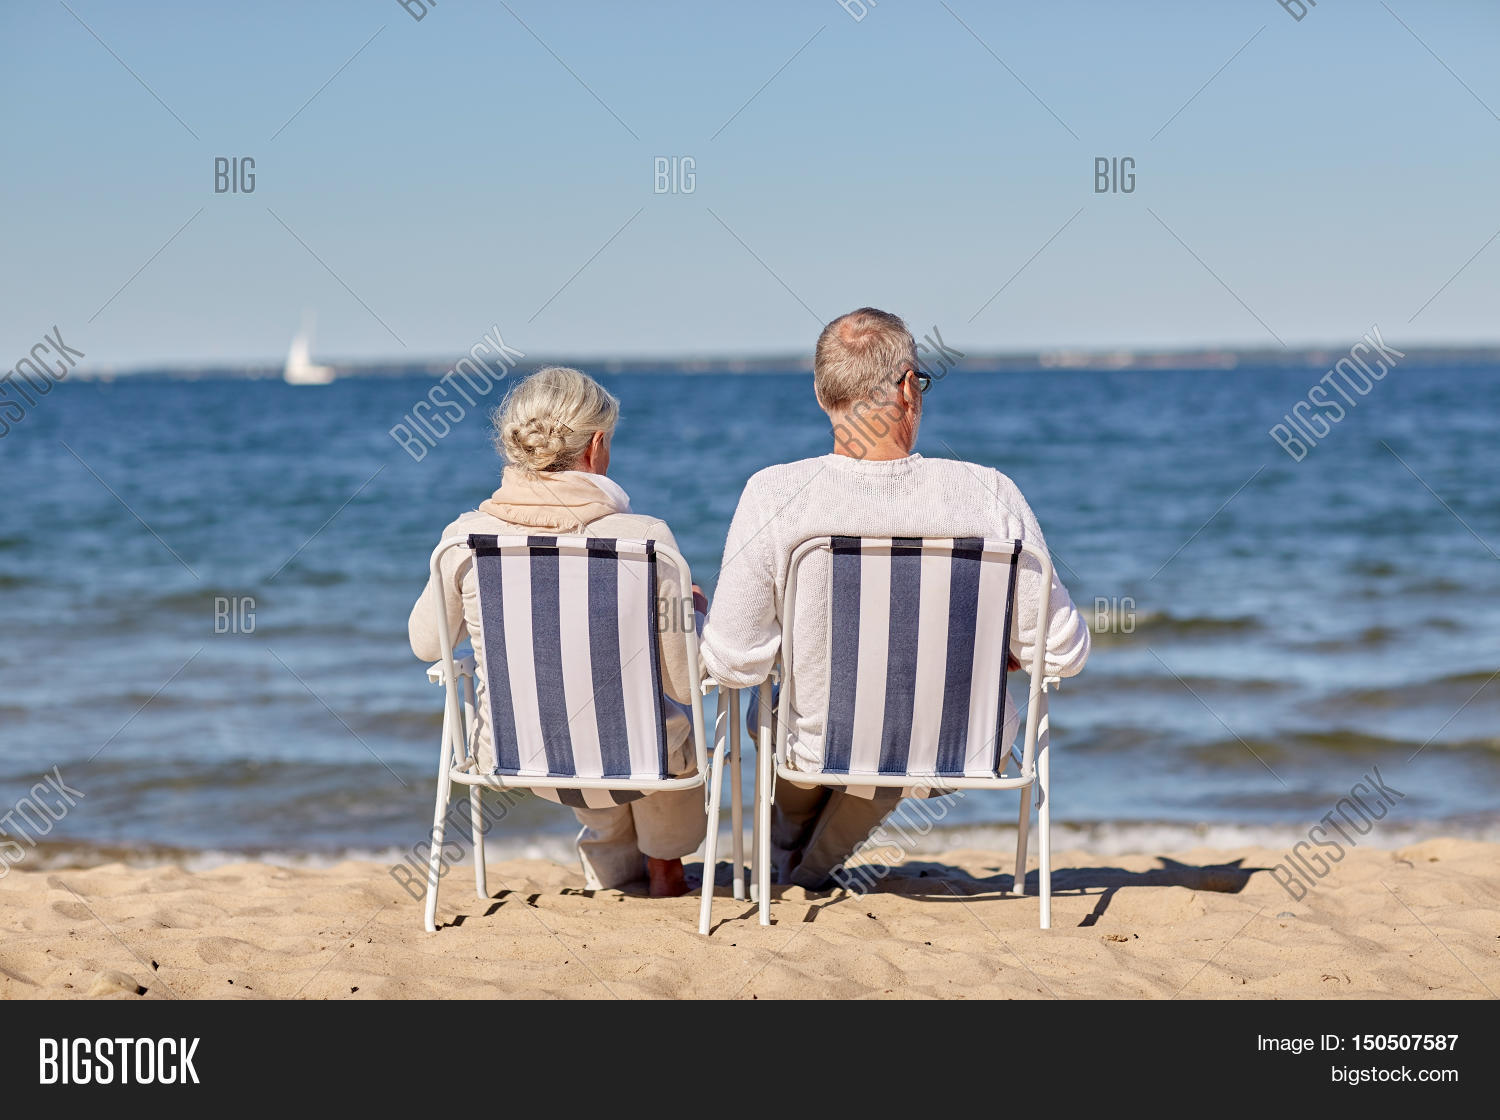 Family Old Age Travel Tourism And People Concept Hy Senior Sitting